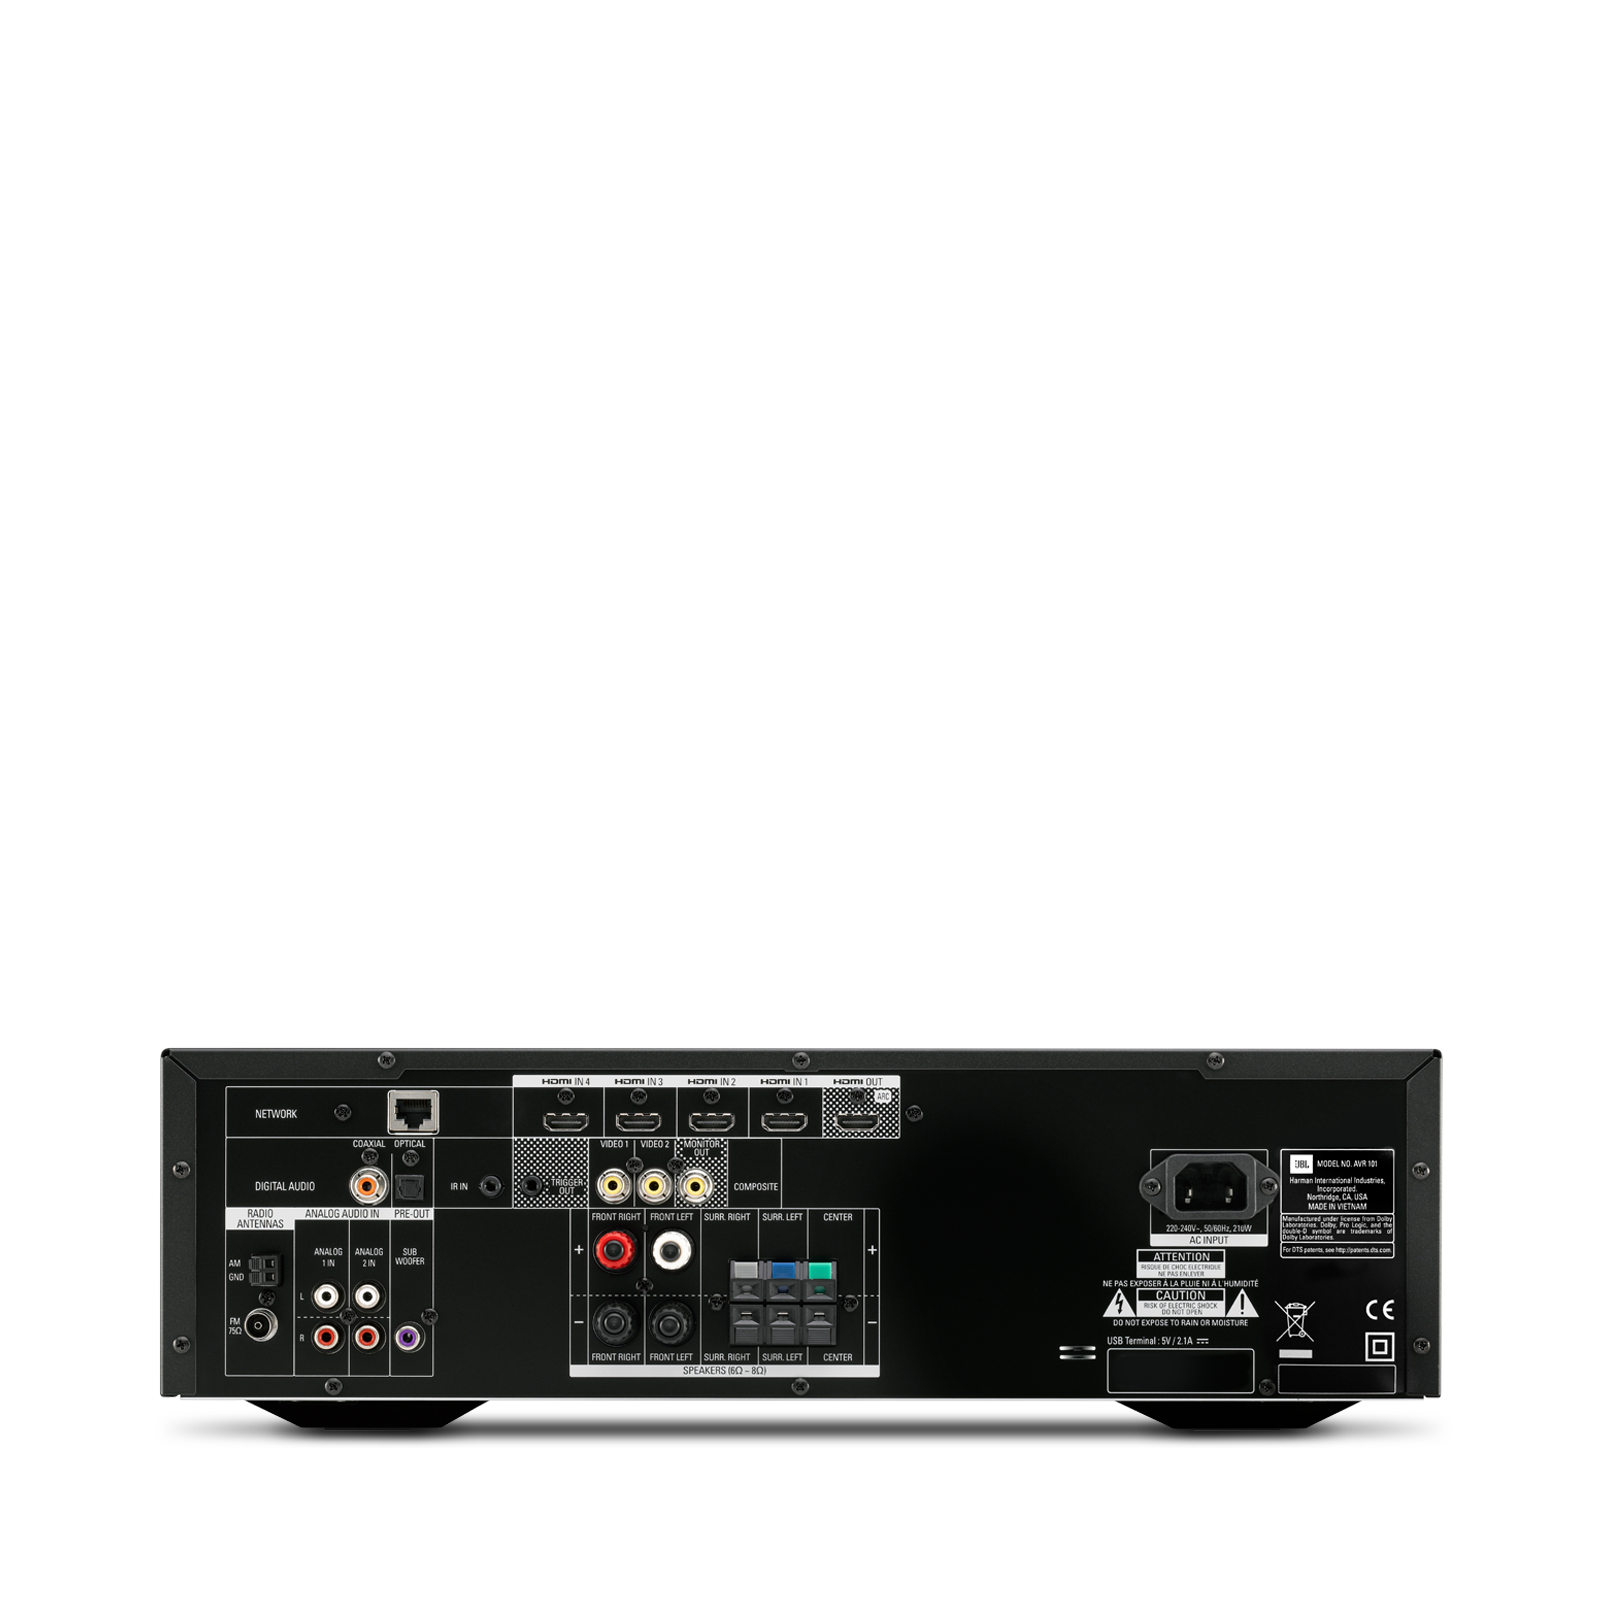 Avr 101 375 Watt 5 1 Channel Networked Audio Video